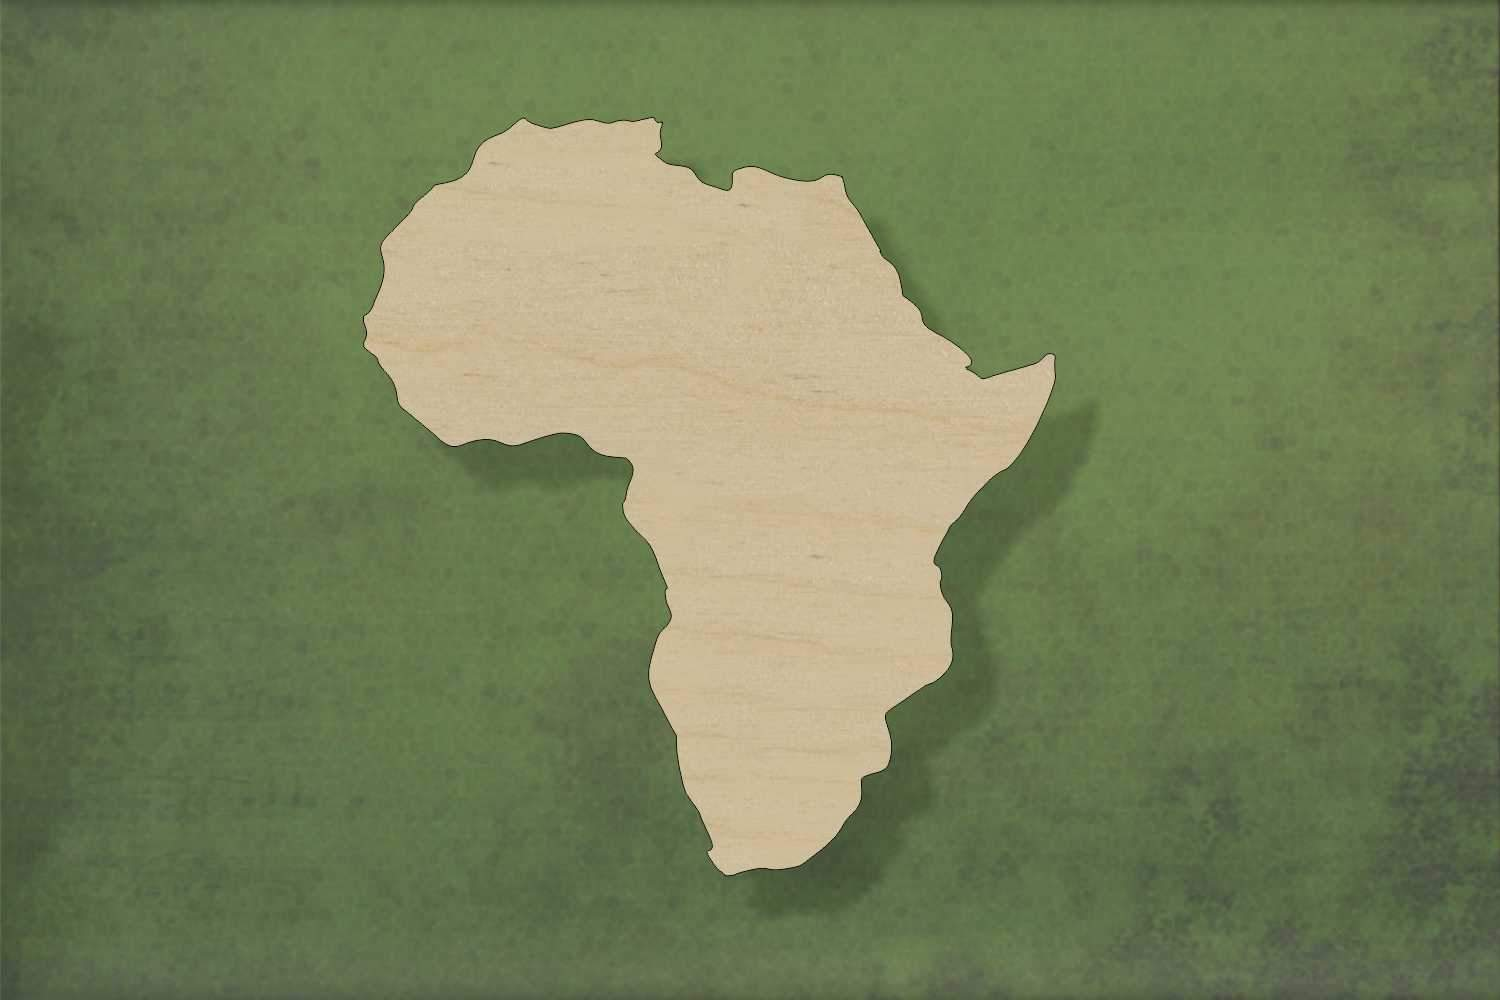 Laser cut, blank wooden Africa shape for craft